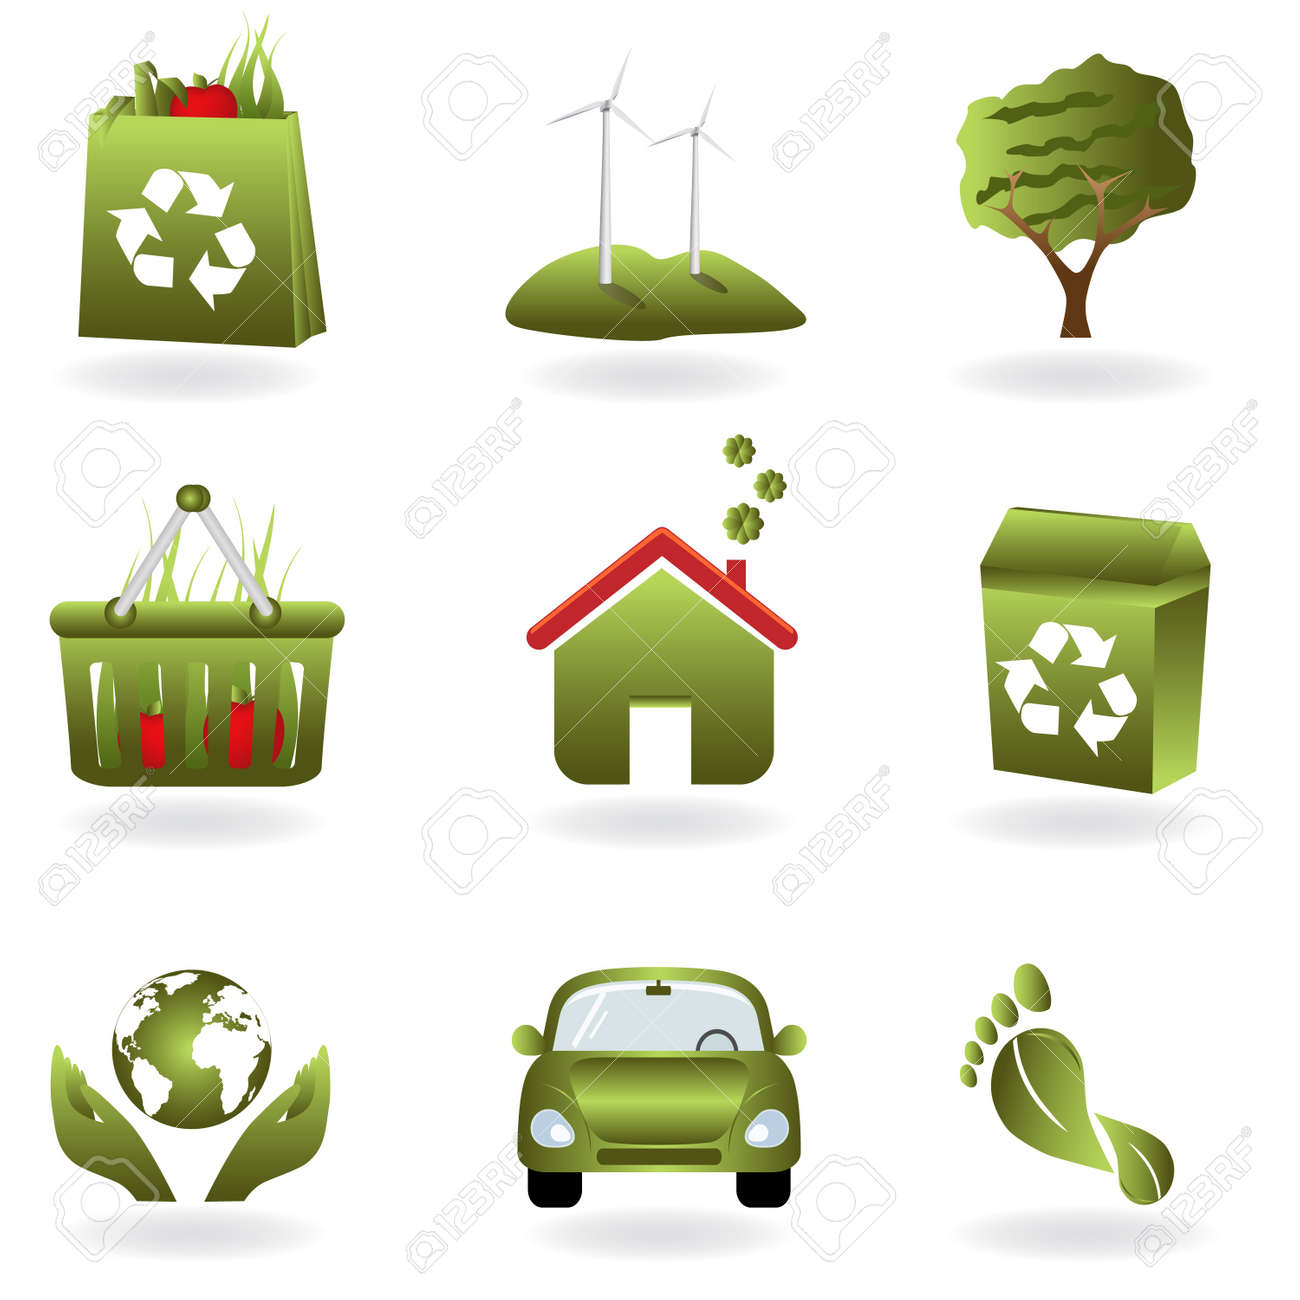 Recycling and green related eco symbols Stock Vector - 8694746